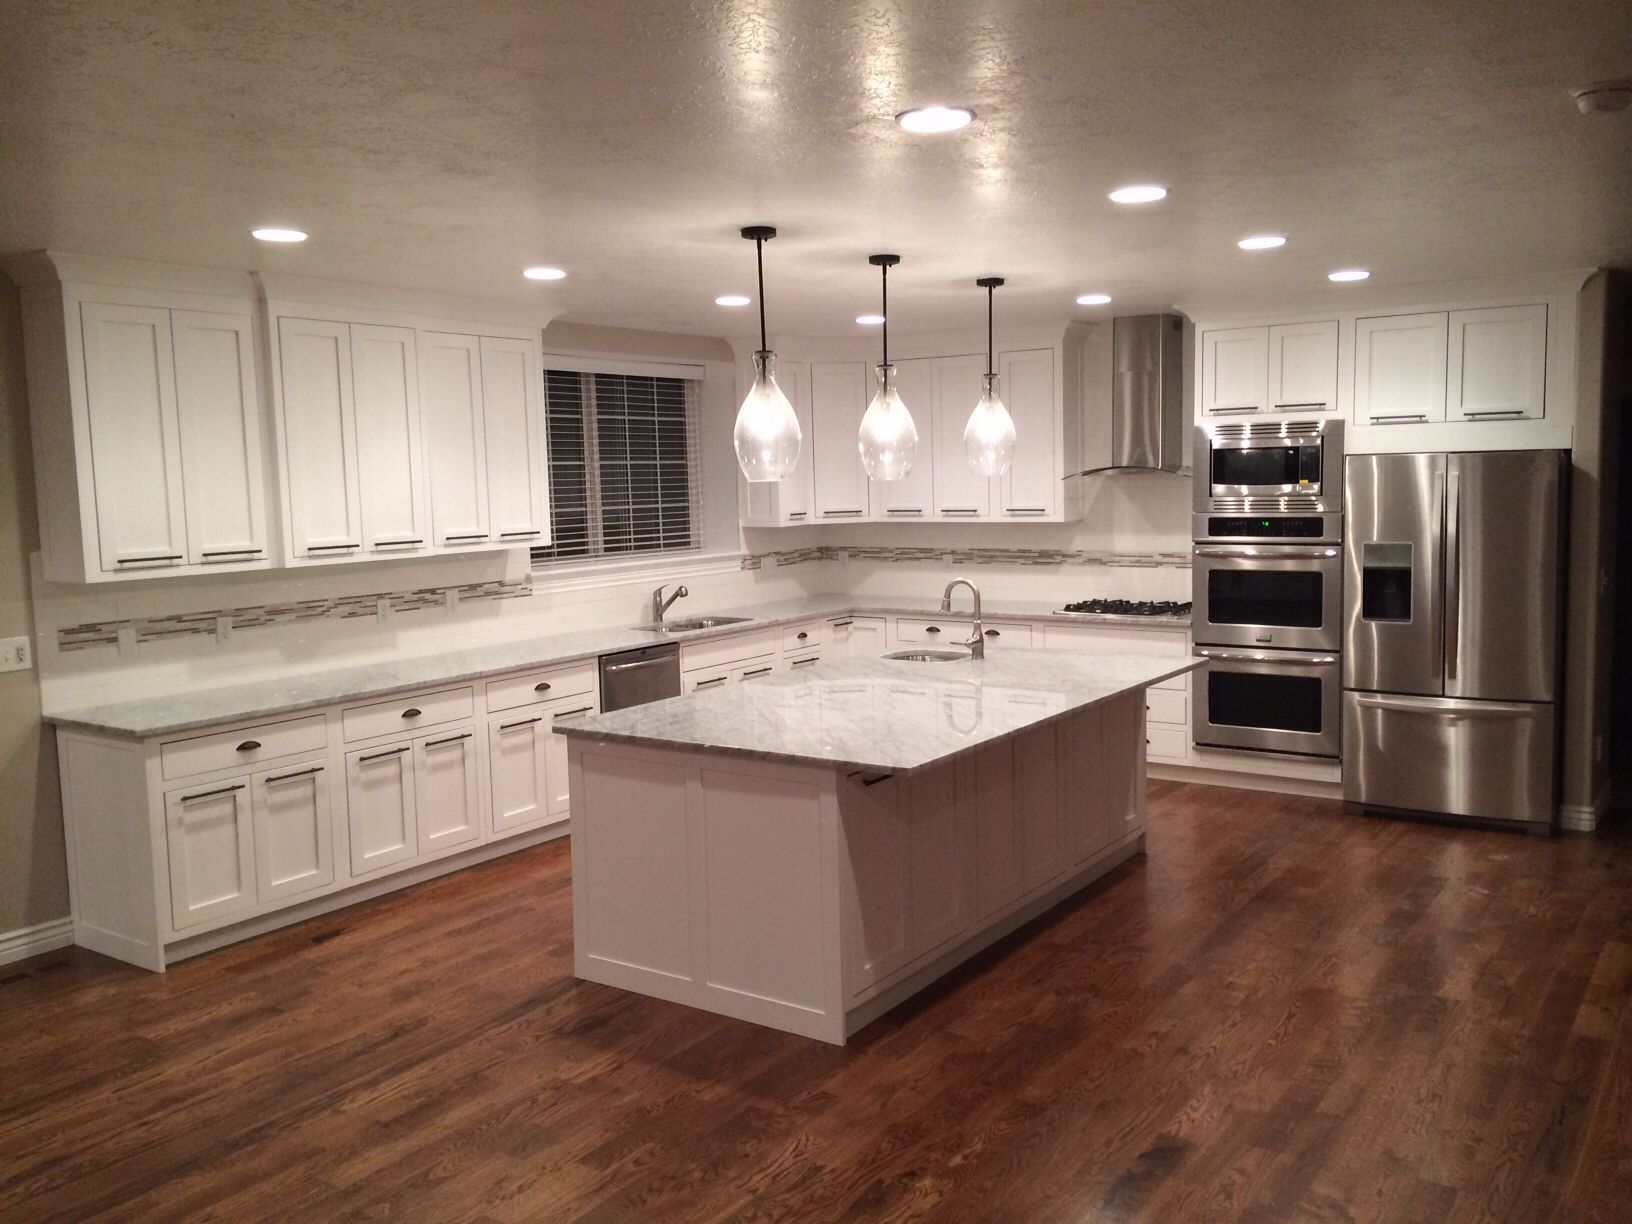 Best White Cabinets Hardwood Floors Kitchen Flooring Trends 400 x 300